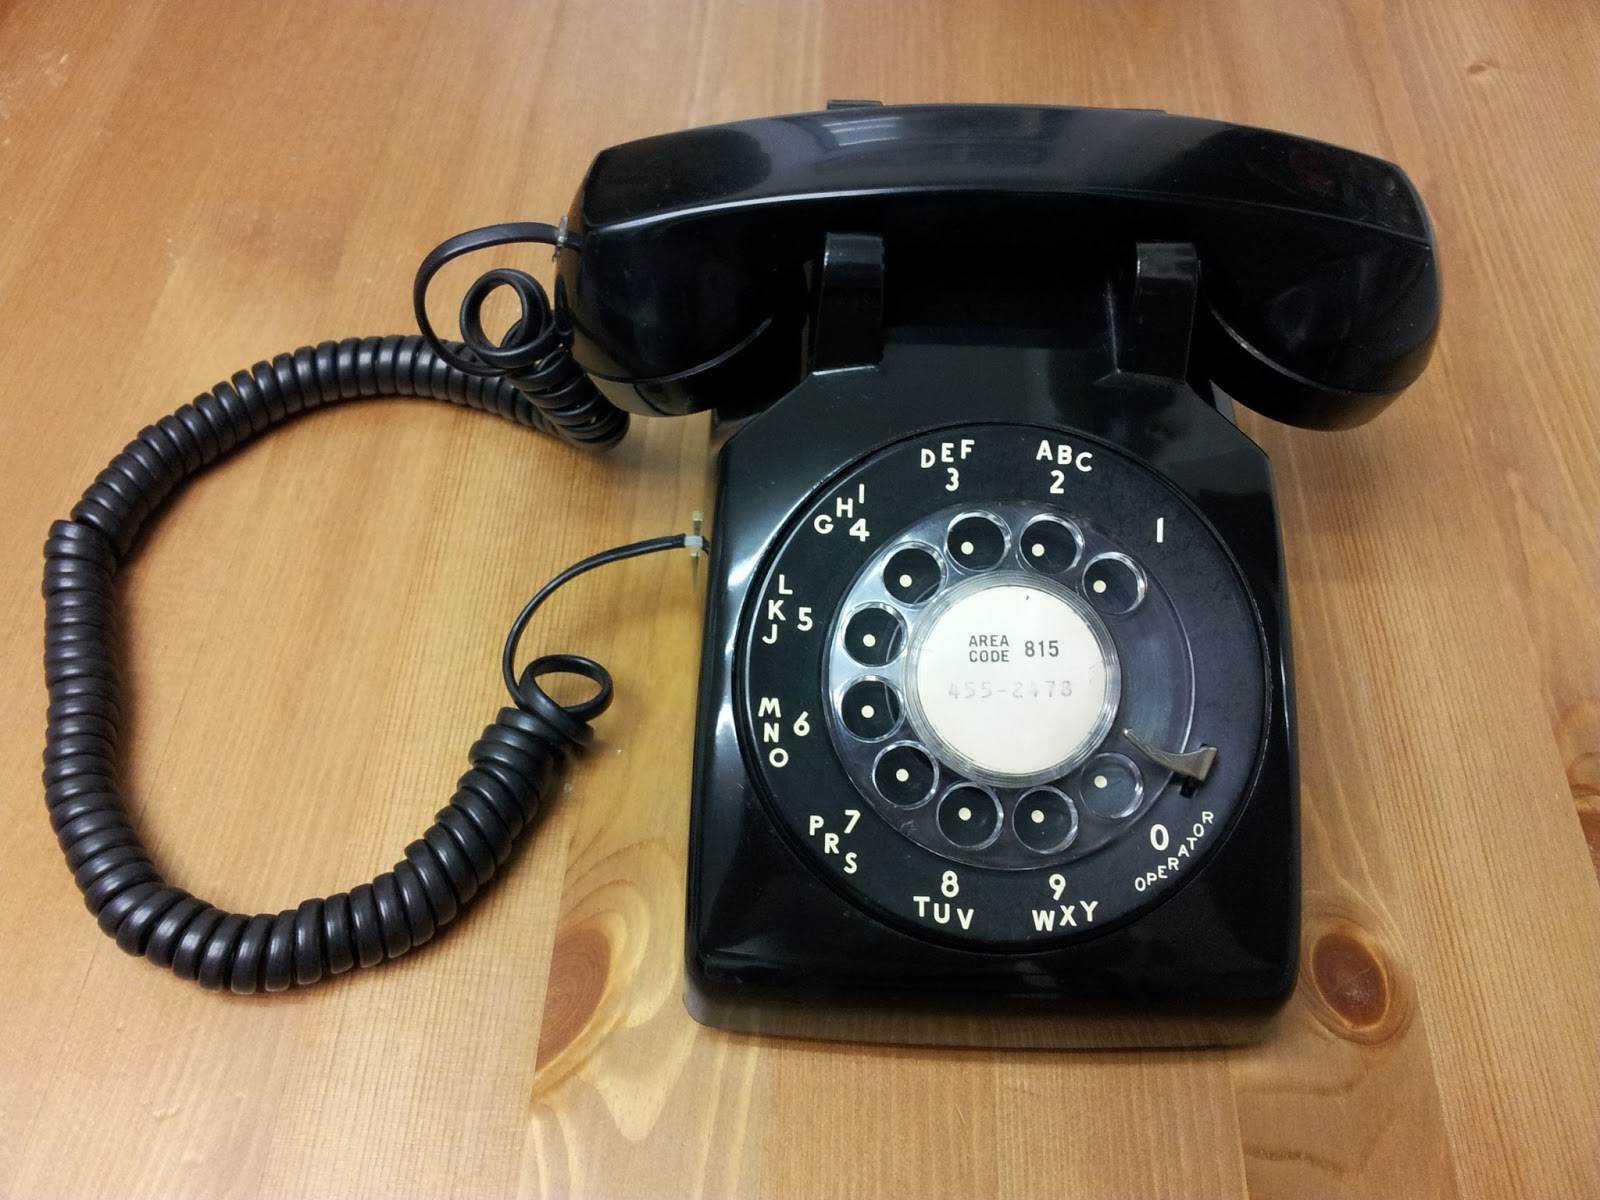 small resolution of ironically rotary dial or pulse dial is actually digital protocol and is supposed to be closer relative to voip than modern push buttons phones